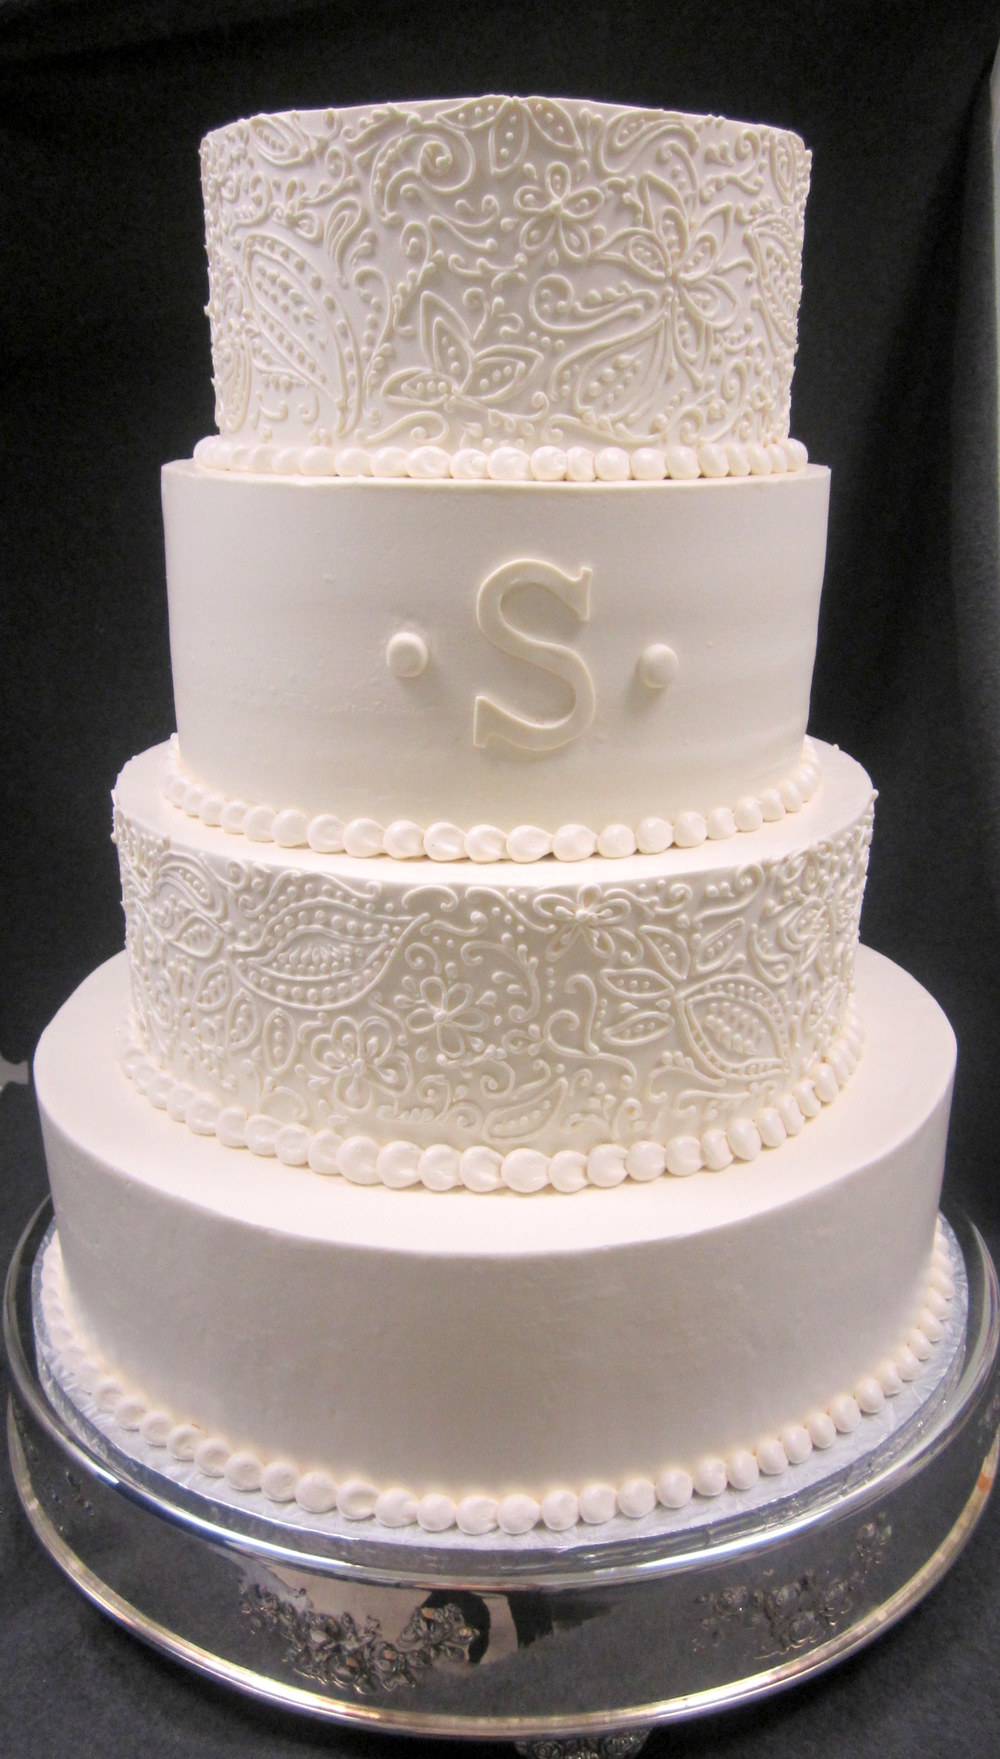 wedding cake-lacey scrolls and monogram.jpg